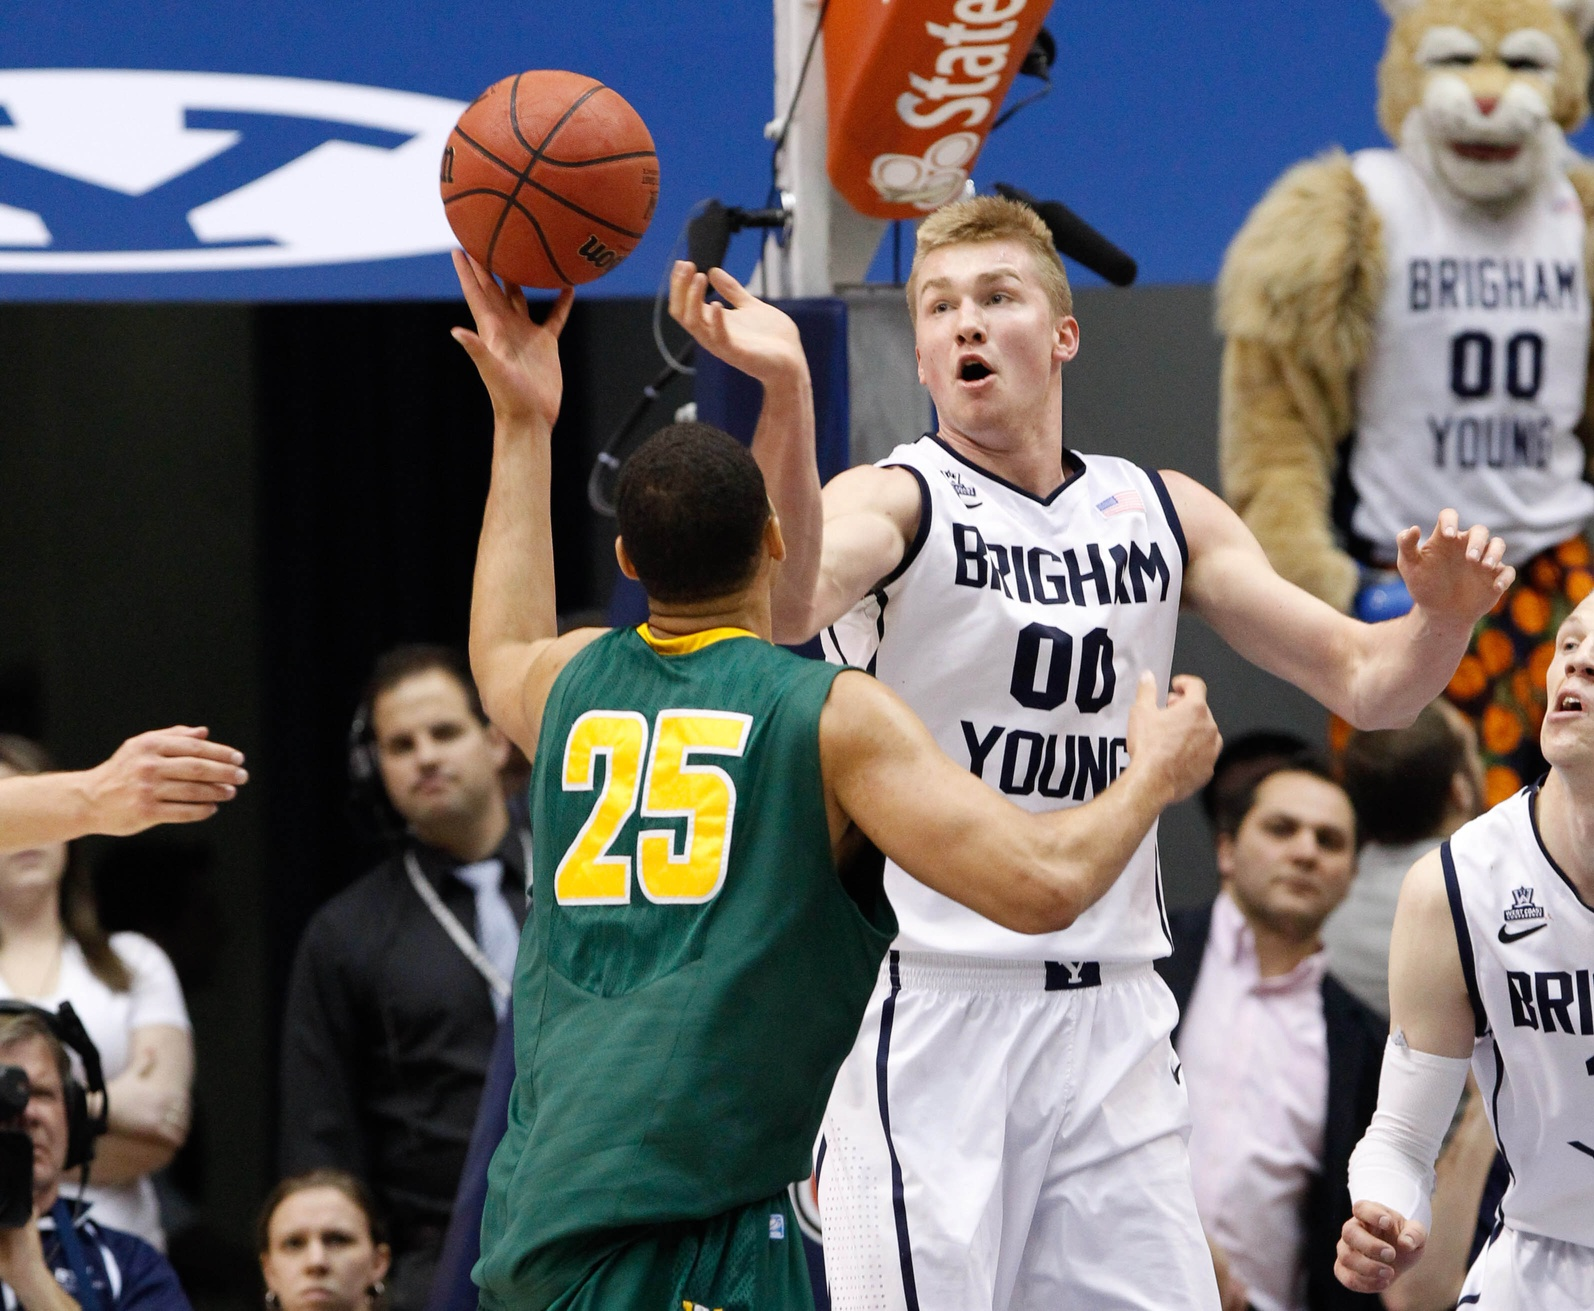 Eric Mika's face, appropriately anticipatory and hopeful. Like BYU's tournament hopes. Chris Nicoll-USA TODAY Sports